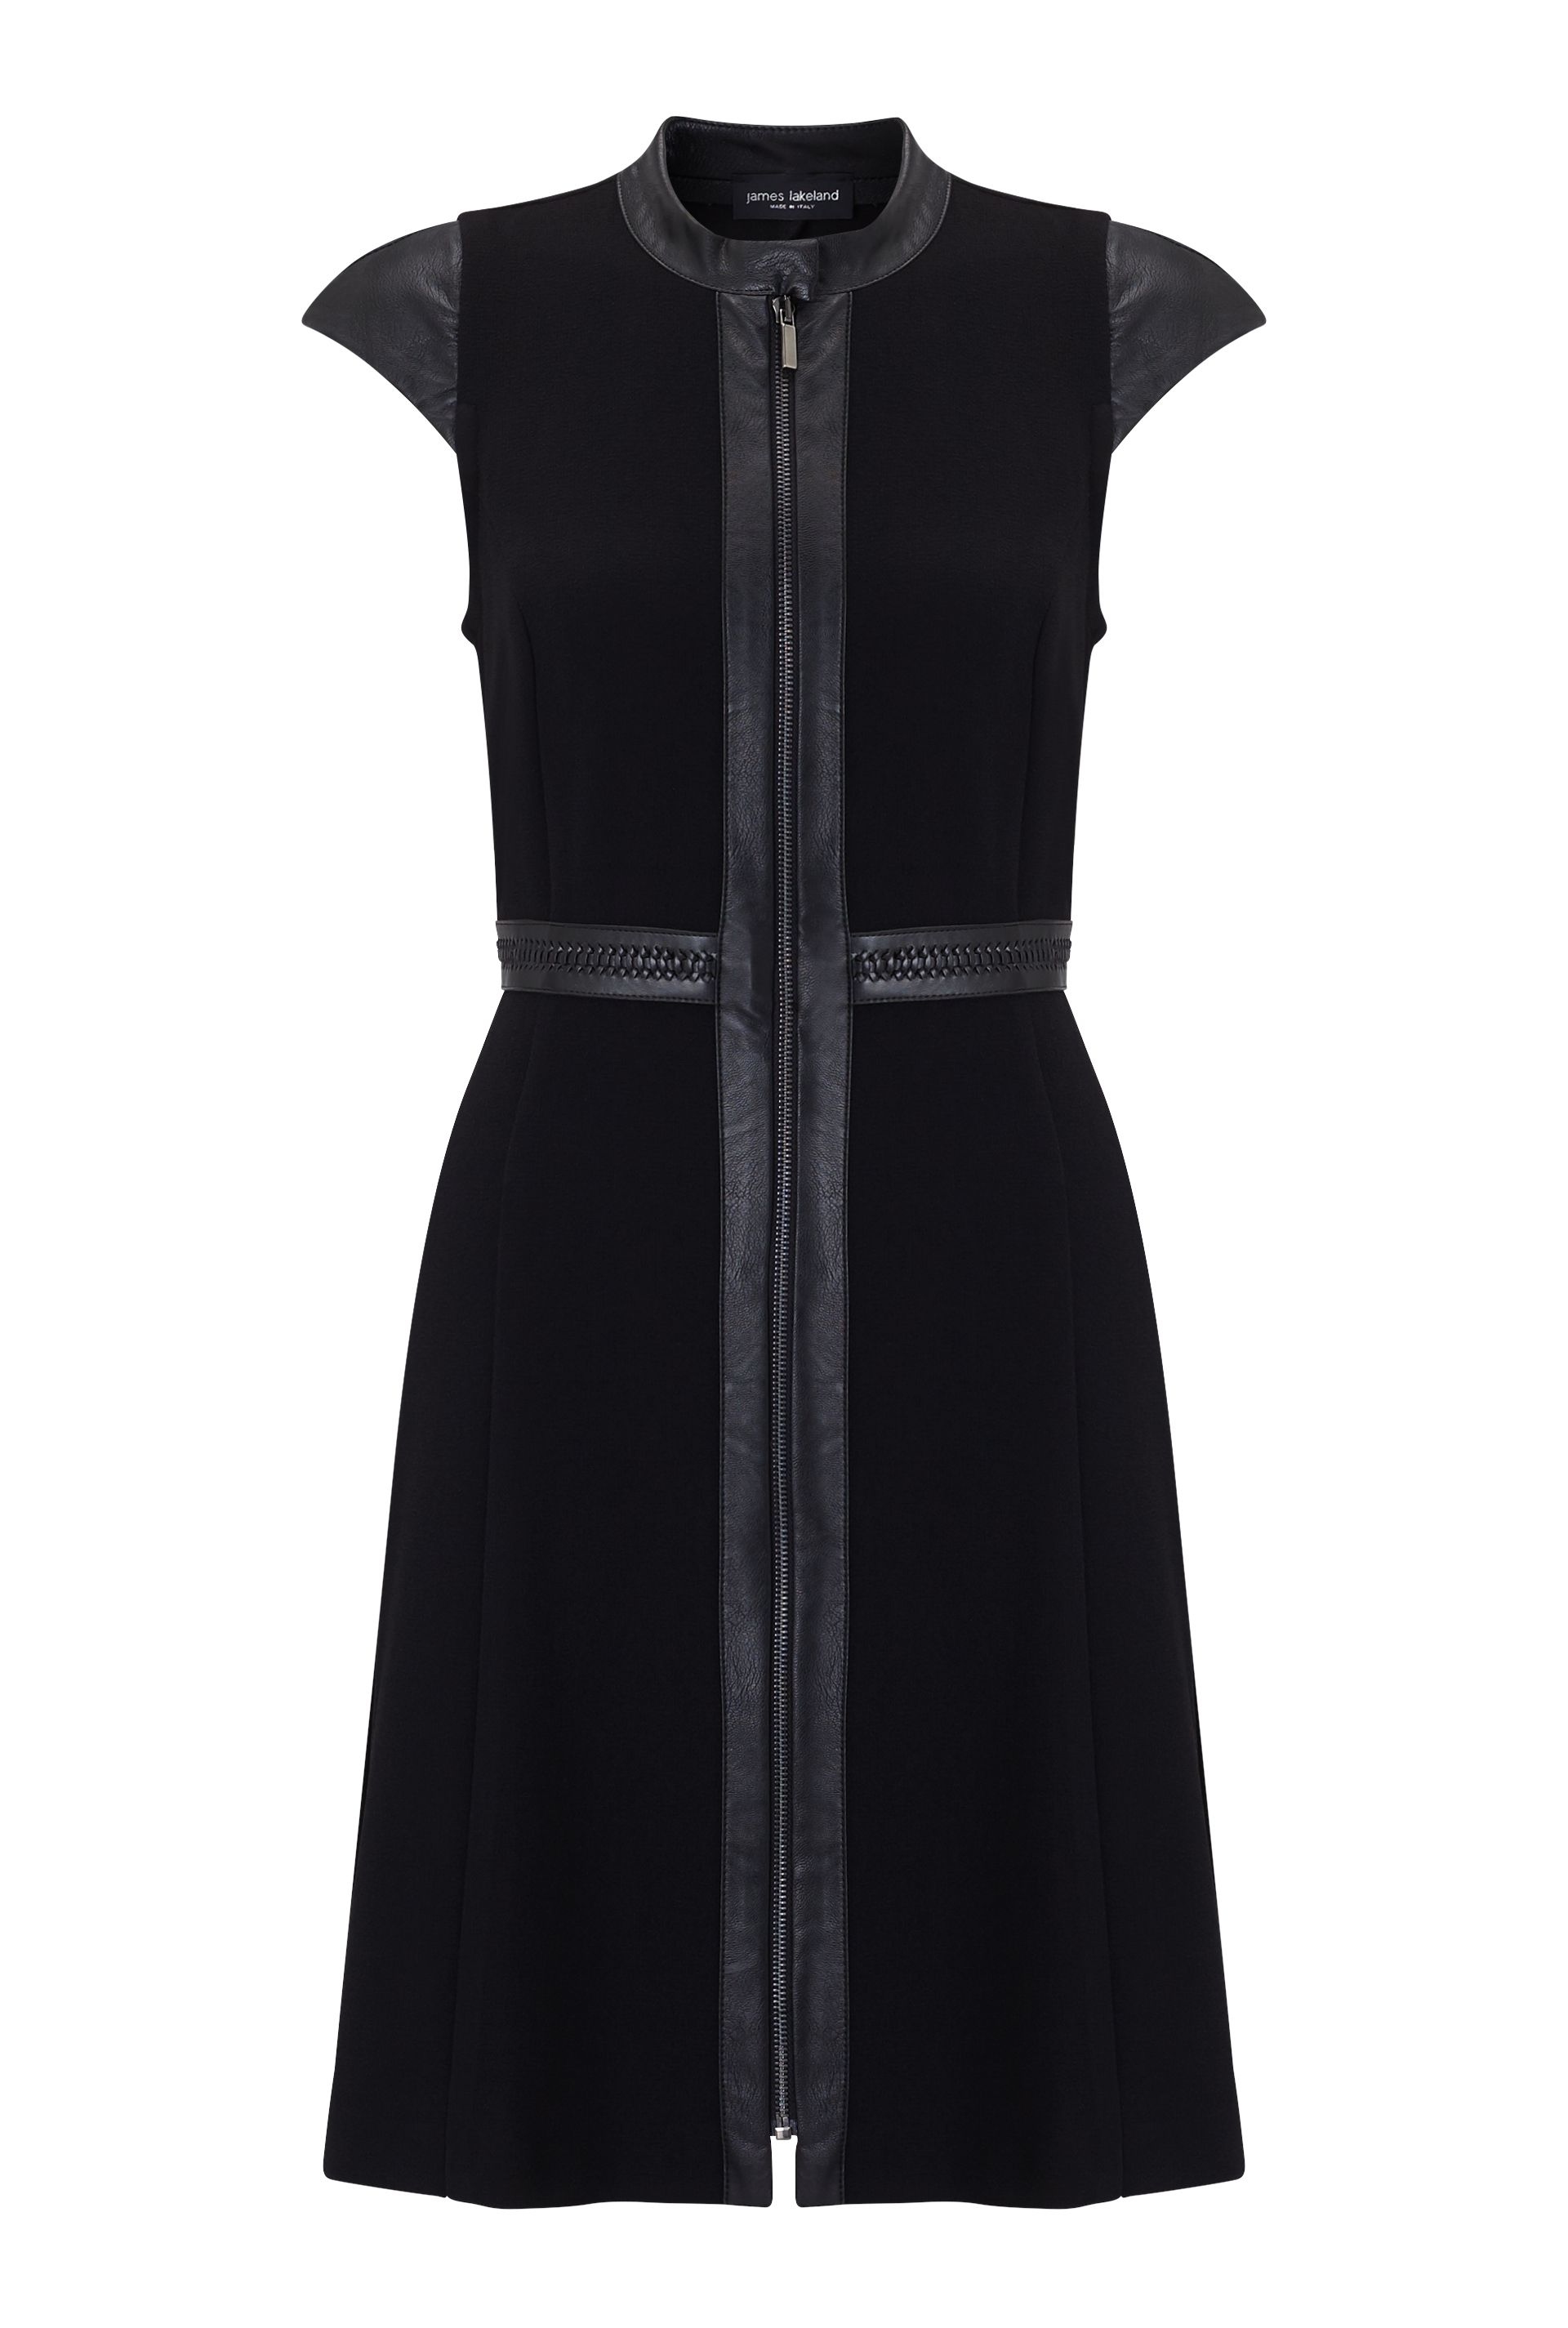 James Lakeland Insert Faux Leather Dress, Black